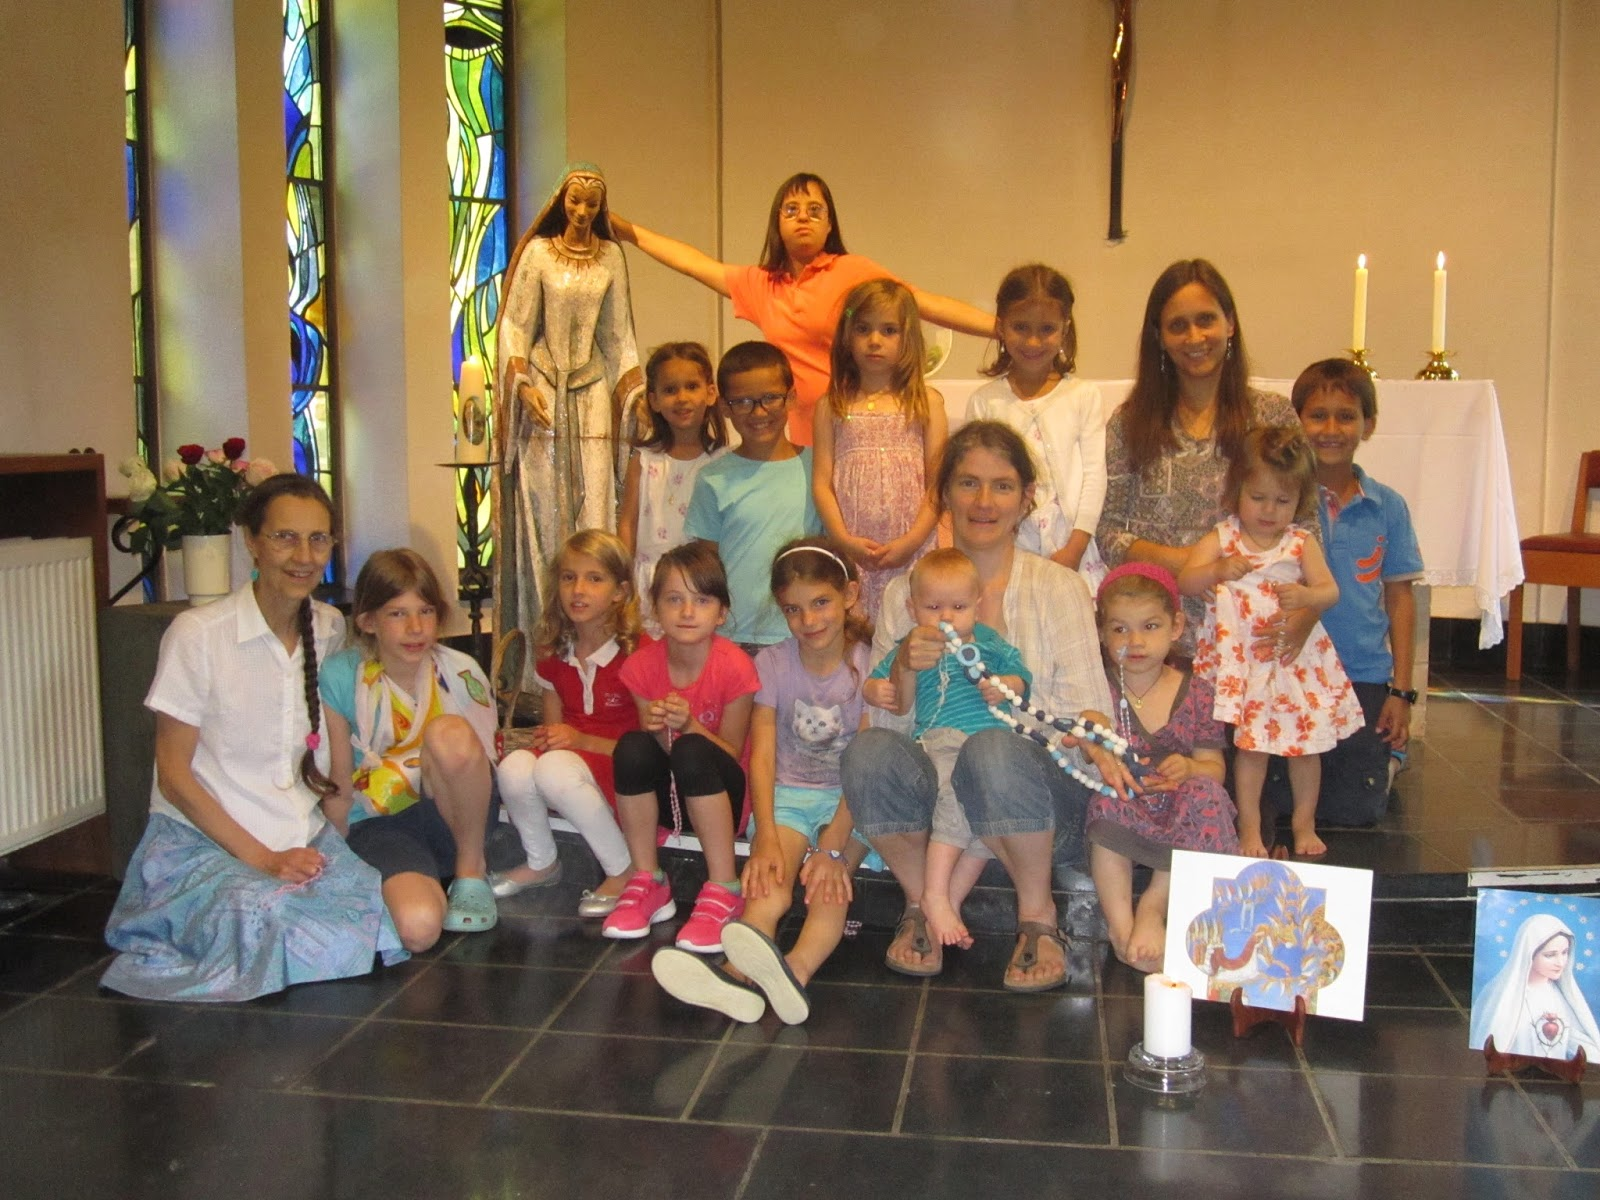 Reflections from the First Children's Rosary Meeting in Belgium